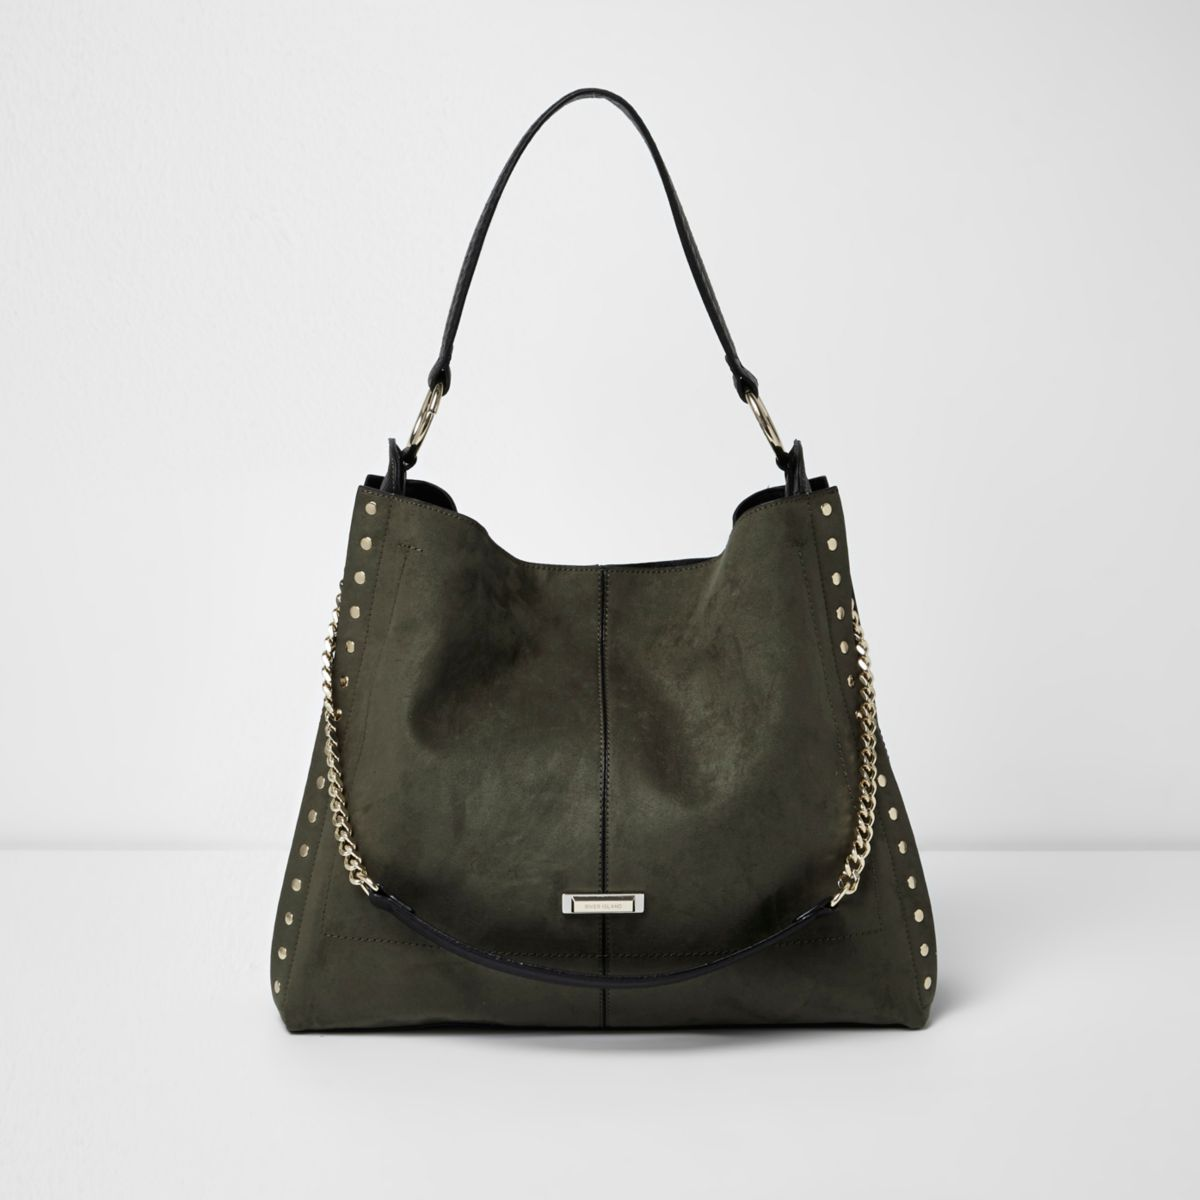 River Island Black And Cream Purse